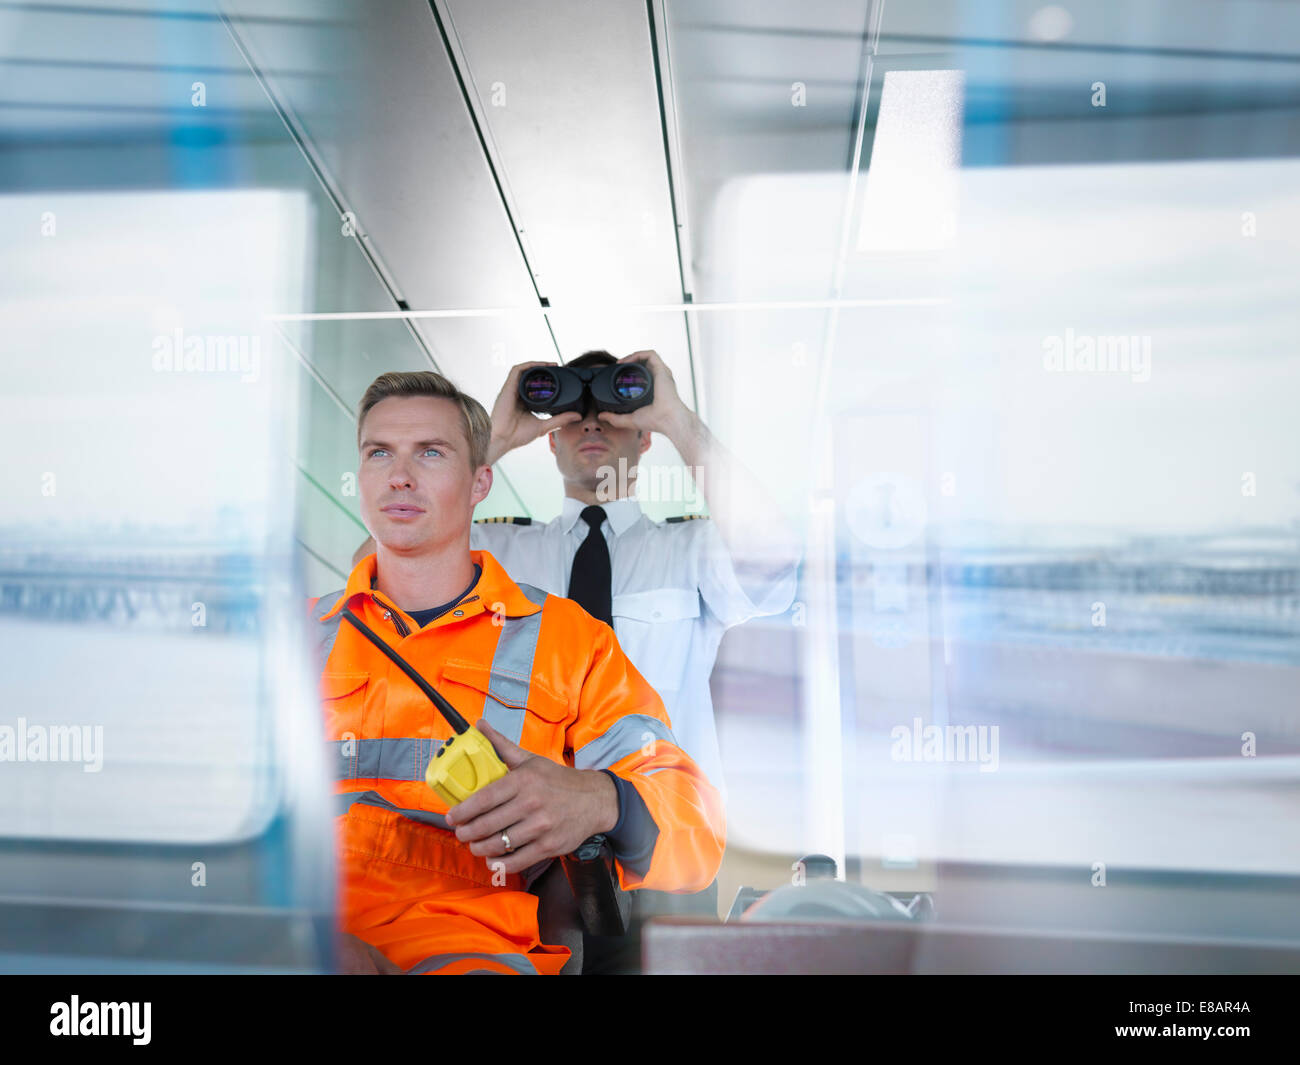 Ship worker and captain using binoculars on ship's bridge with reflections on window - Stock Image